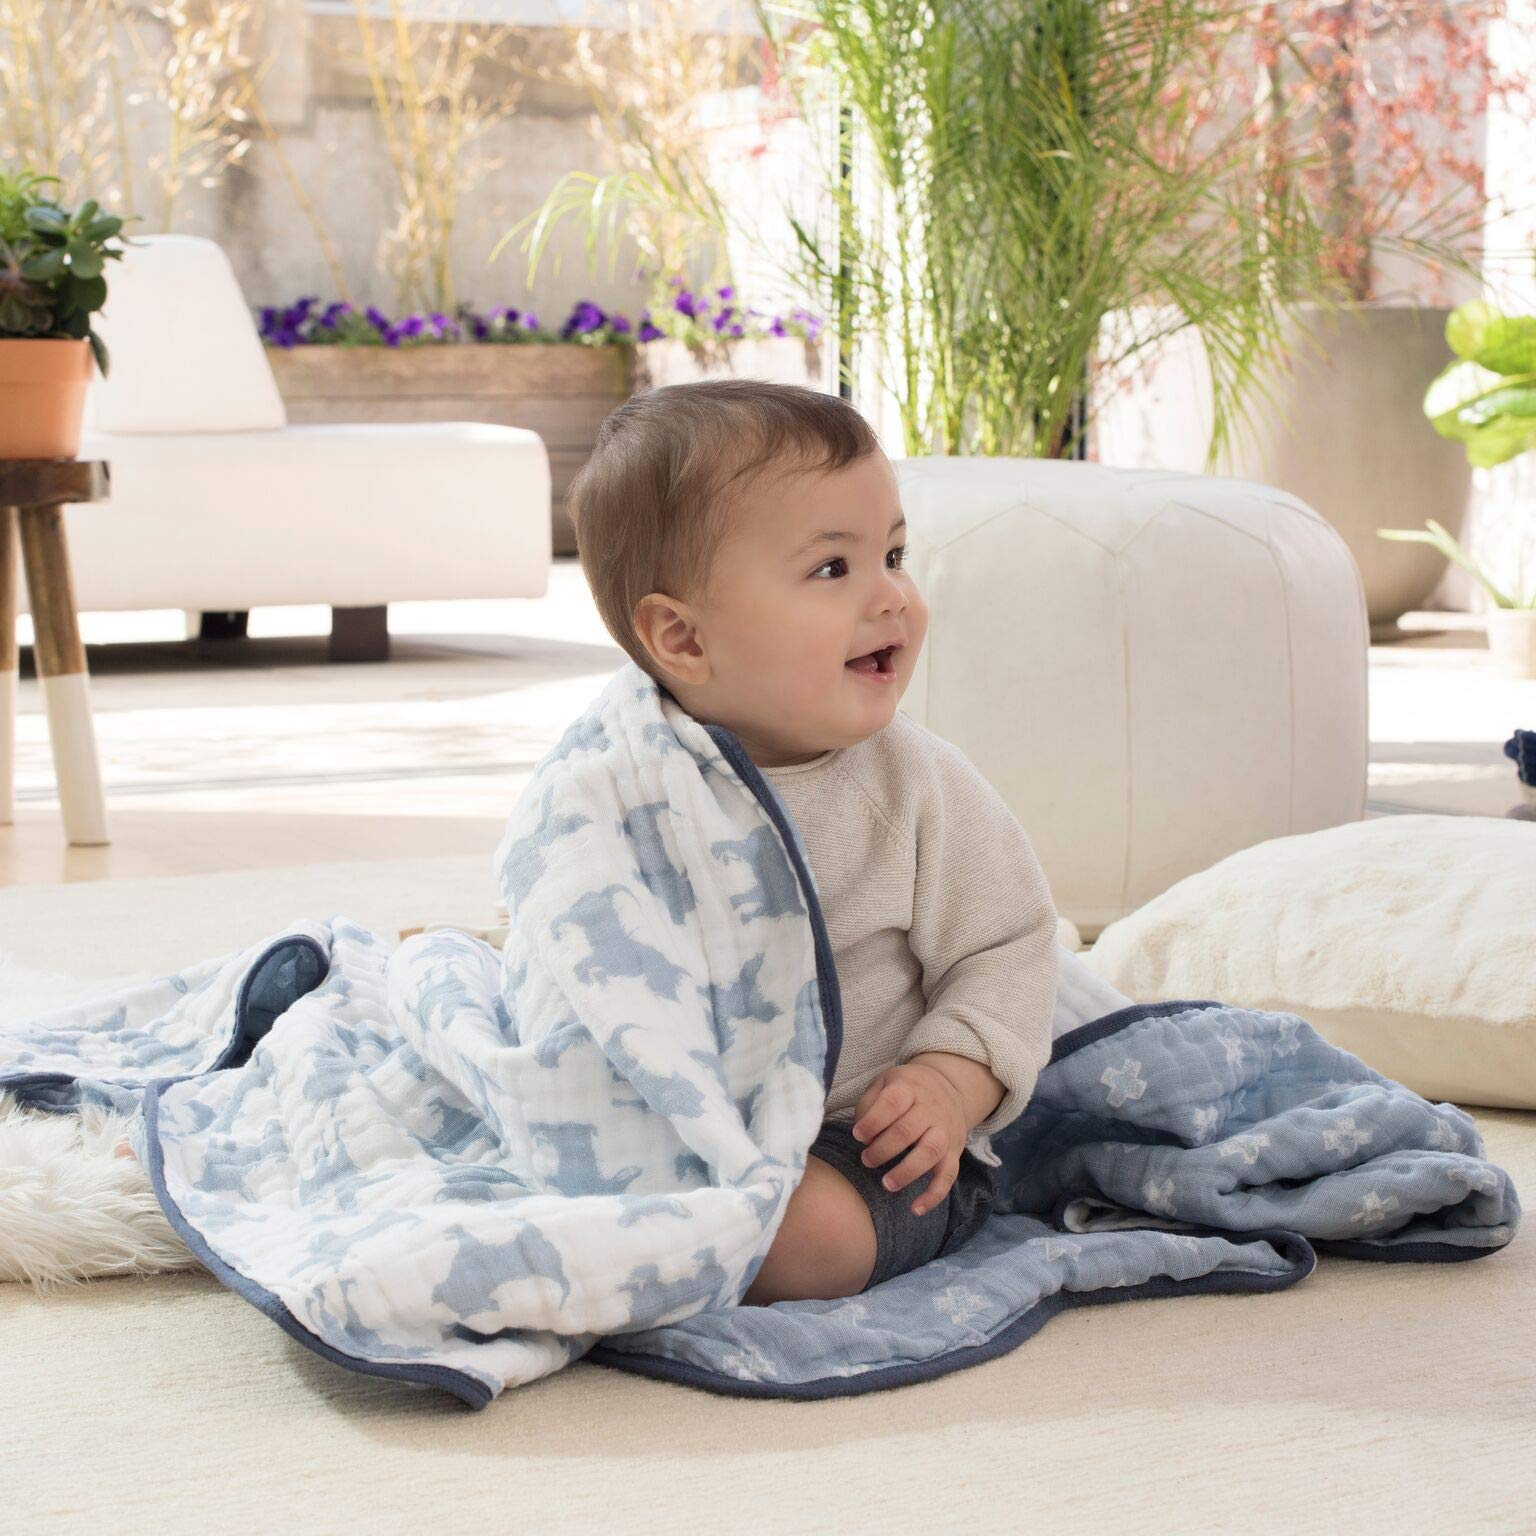 aden + anais Dream Blanket; 100% Cotton Muslin; 4 Layer Lightweight and Breathable; Large 47 X 47 inch; Waverly - Pup by aden + anais (Image #3)